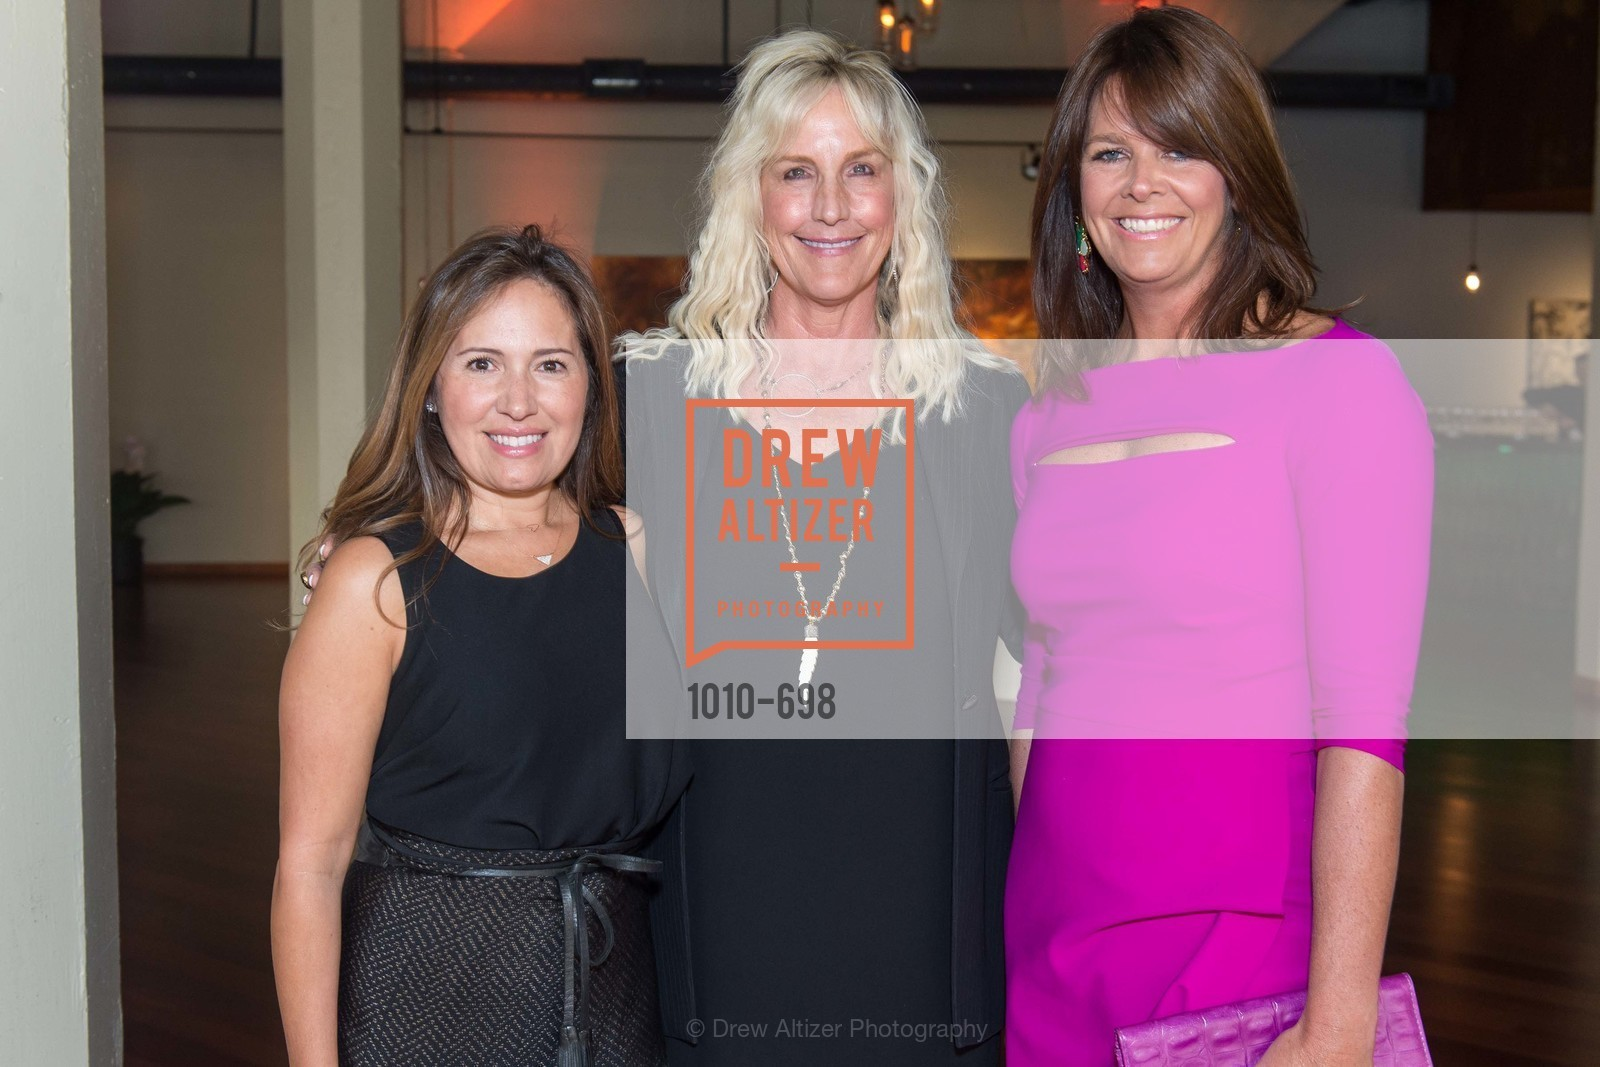 Ingrid Carney, Erin Brockovich, Christine Gardner, EWG's 6th Annual Earth Dinner, US, May 6th, 2015,Drew Altizer, Drew Altizer Photography, full-service event agency, private events, San Francisco photographer, photographer California